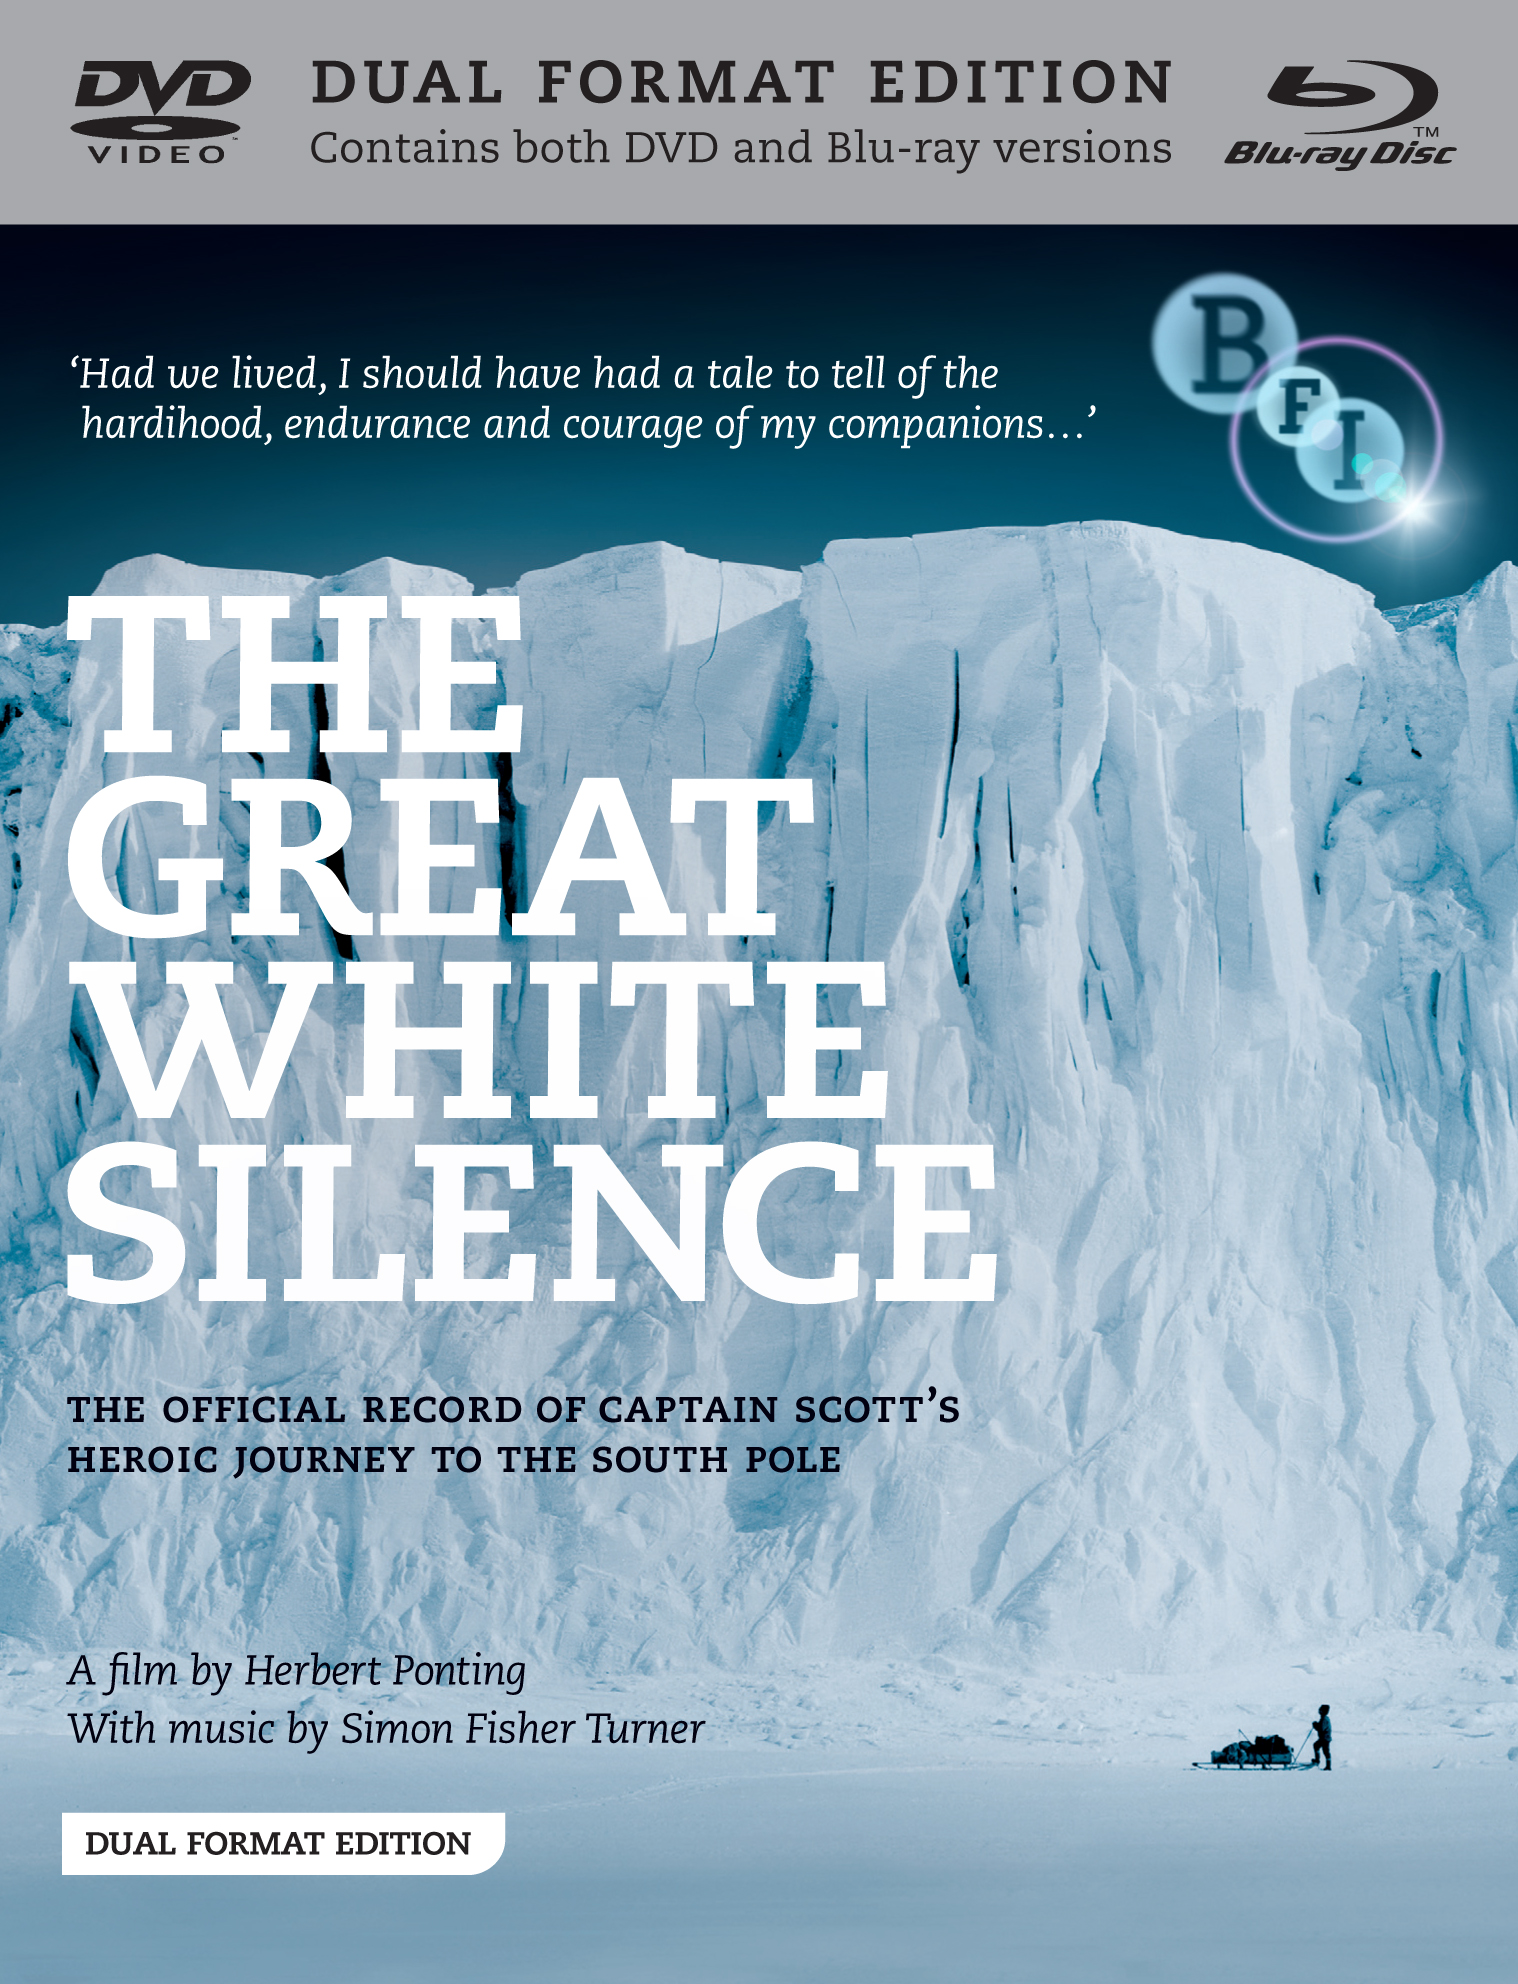 Great White Silence blurb